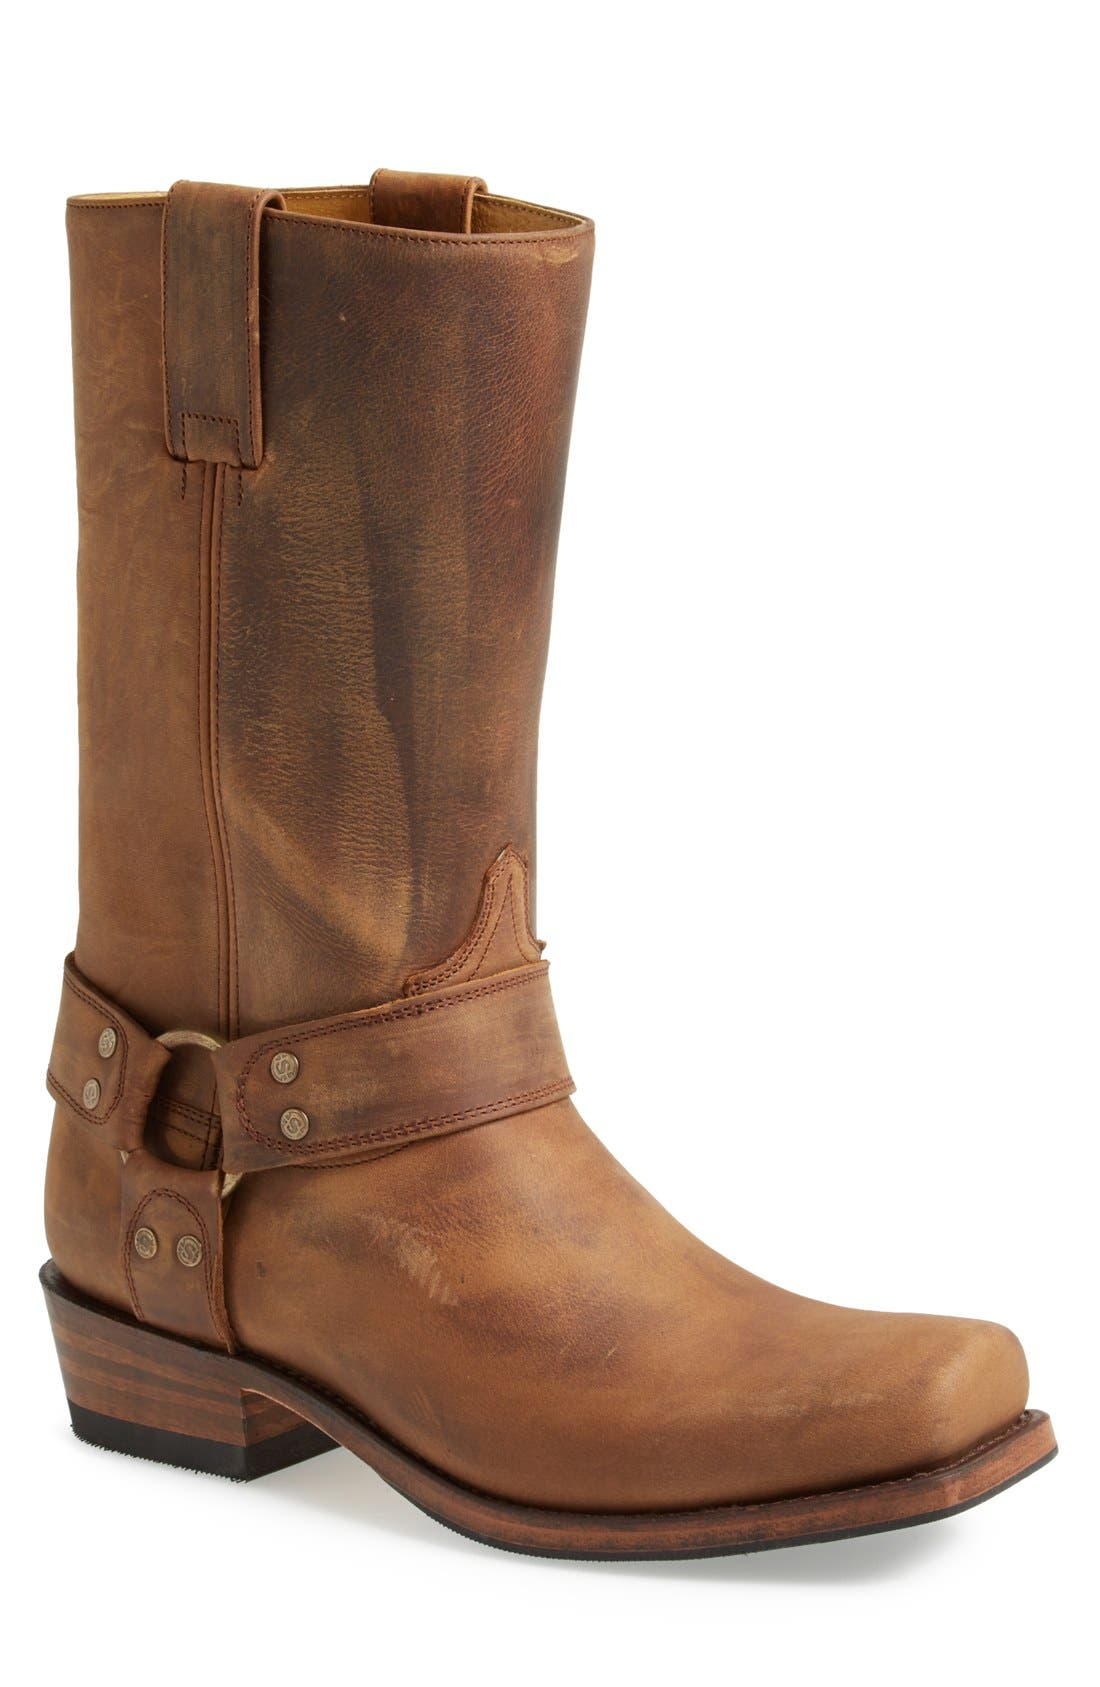 Alternate Image 1 Selected - Sendra Boots Tall Harness Boot (Men)